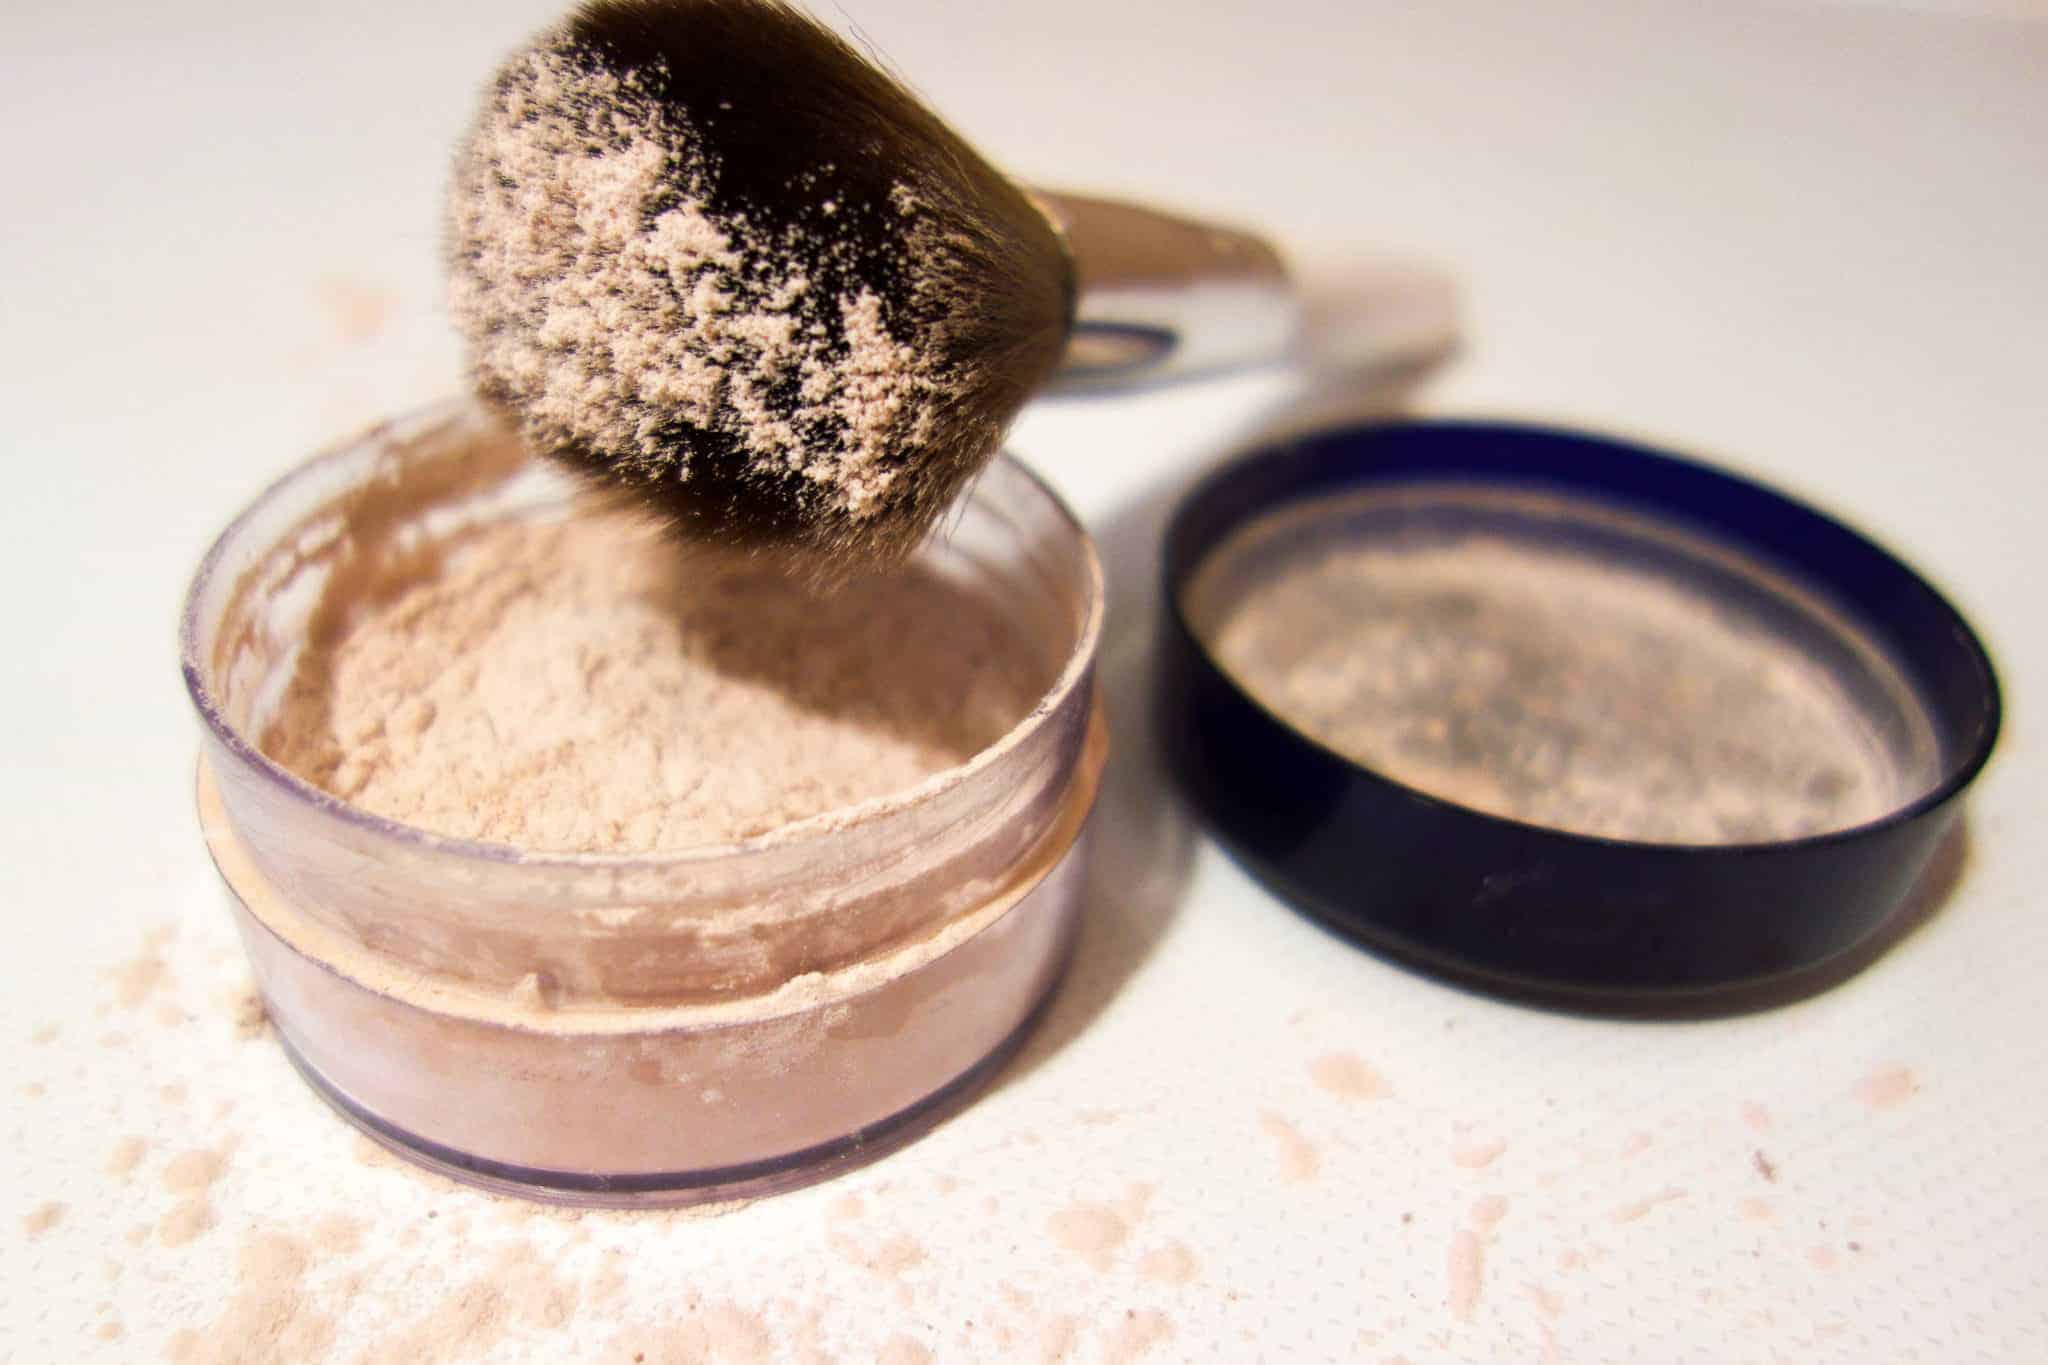 Super simple to make translucent powder. Only two ingredients!